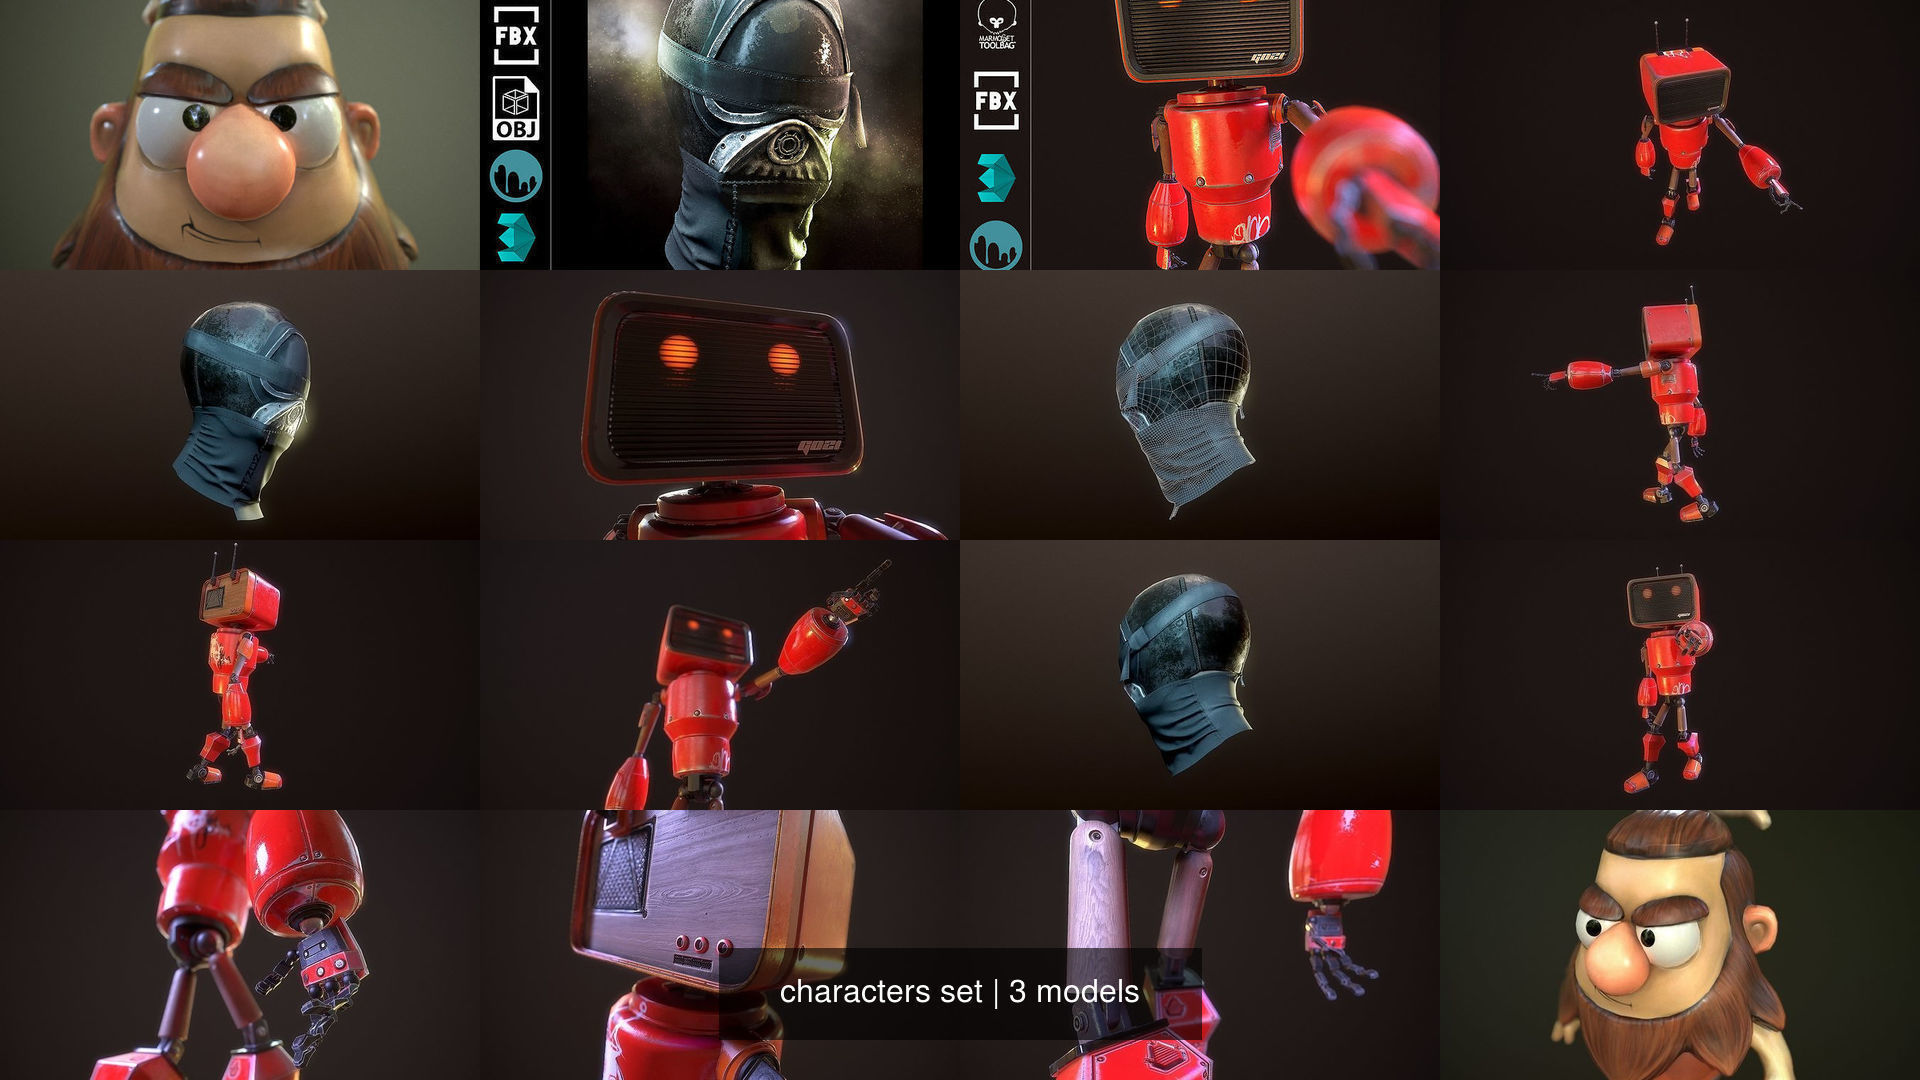 characters set | 3D Model Collection